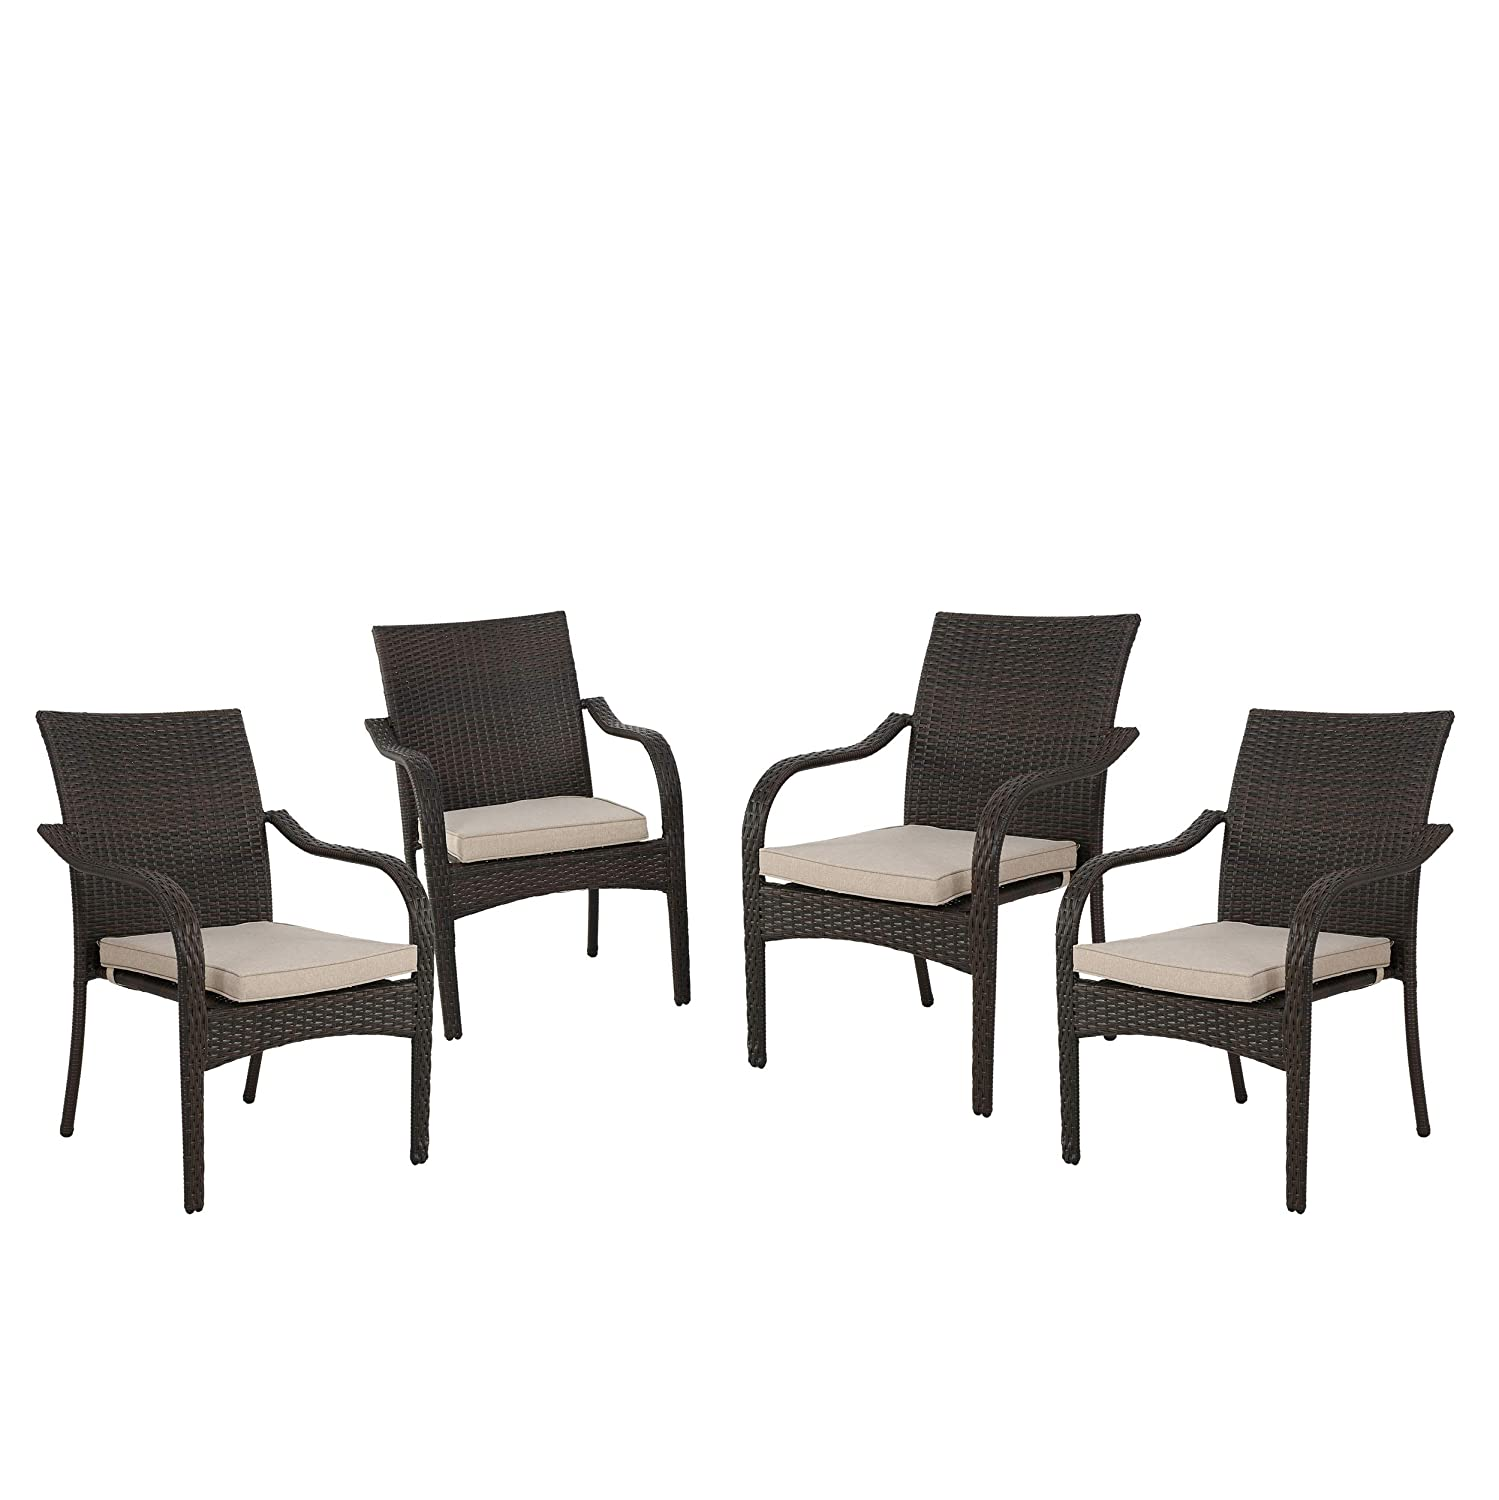 Christopher Knight Home 299455 Florianopolis Brown Wicker Stacking Chairs Set of 4 , Multibrown and Textured